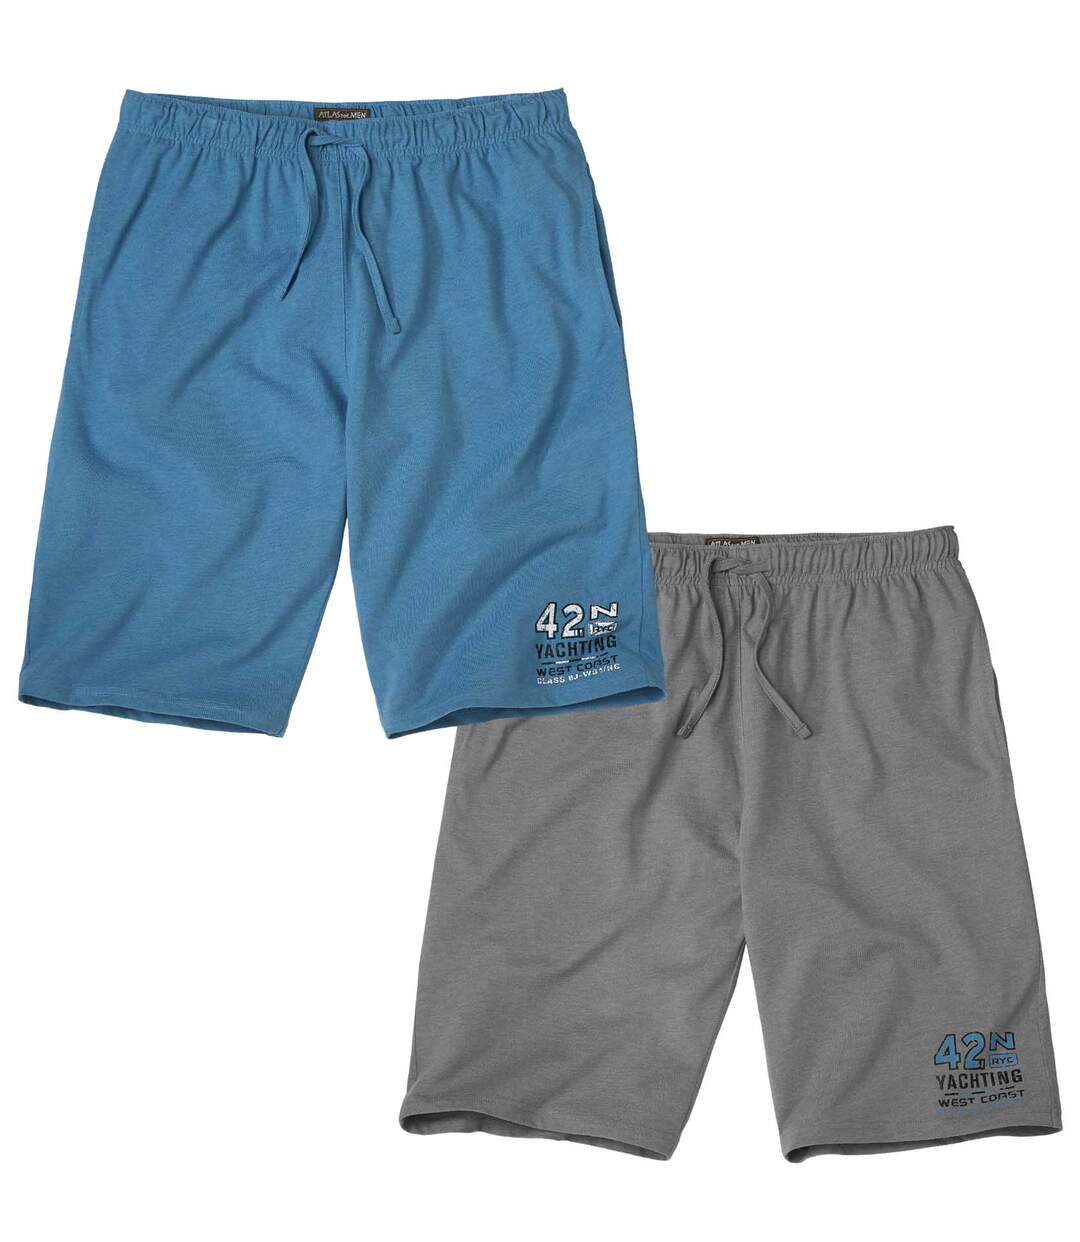 Pack of 2 Men's Yachting Bermuda Shorts - Grey Blue